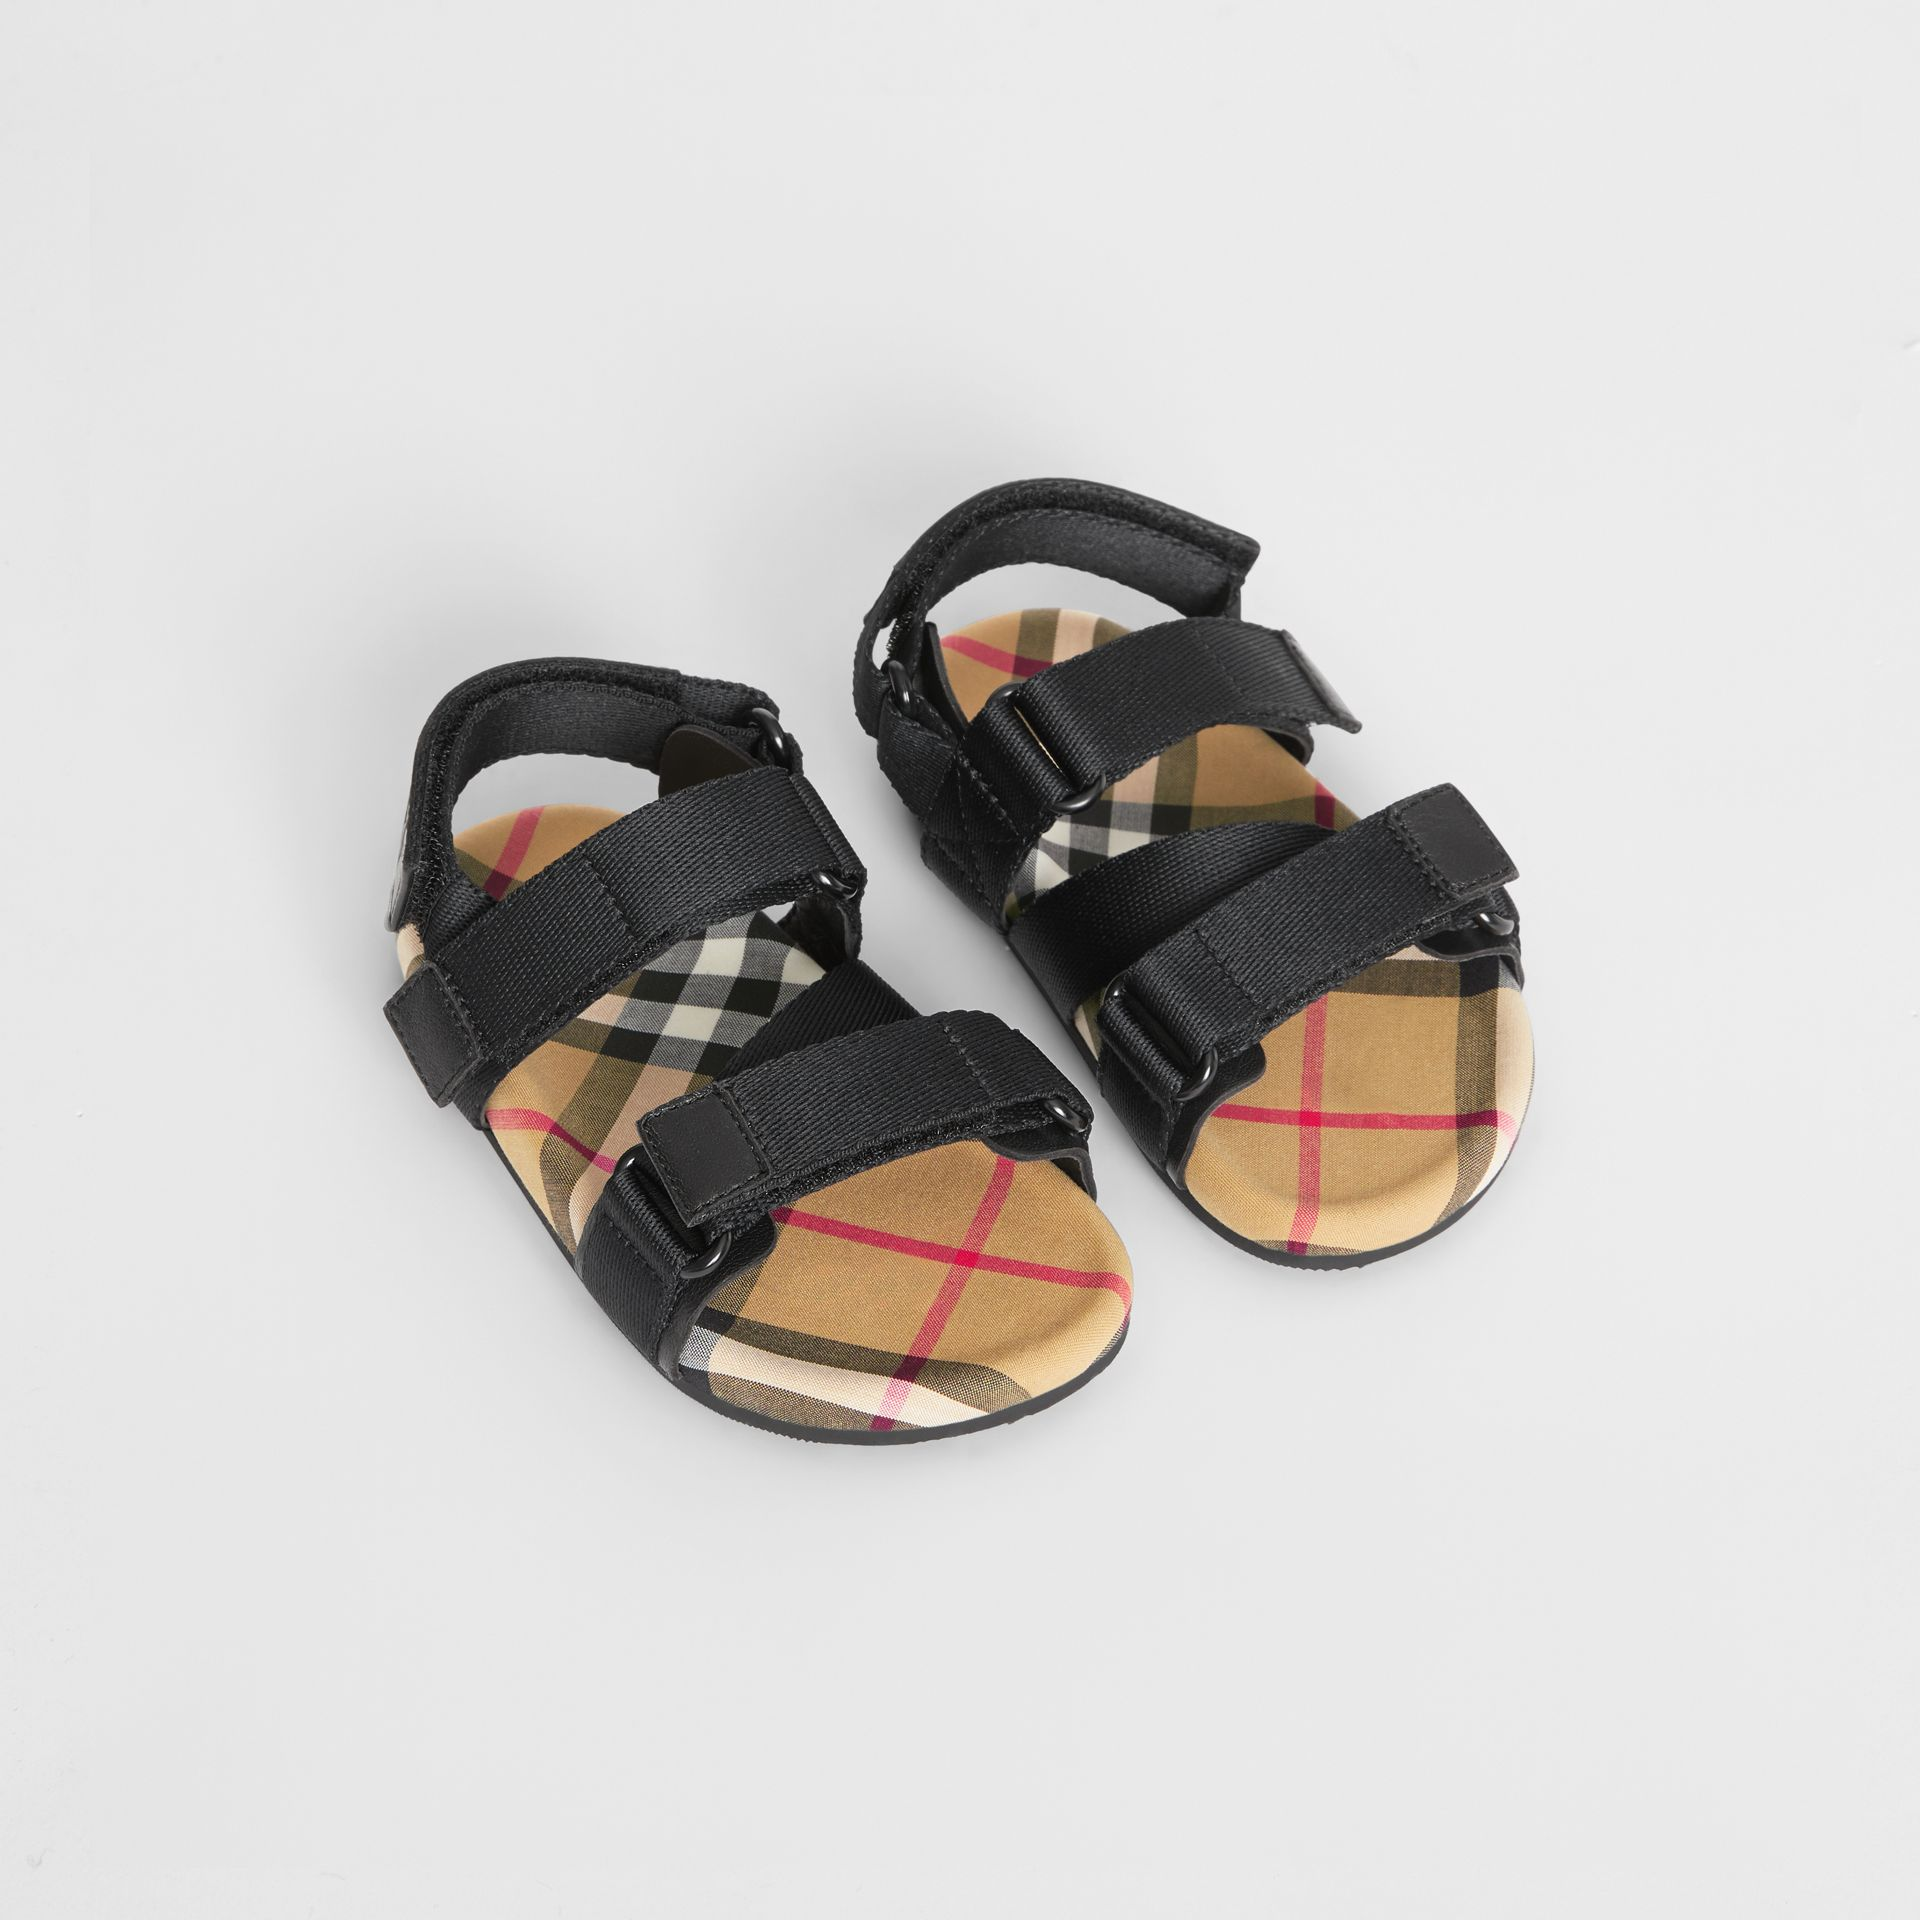 Sandales en coton Vintage check avec bride indéchirable (Noir/jaune Antique) - Enfant | Burberry Canada - photo de la galerie 0